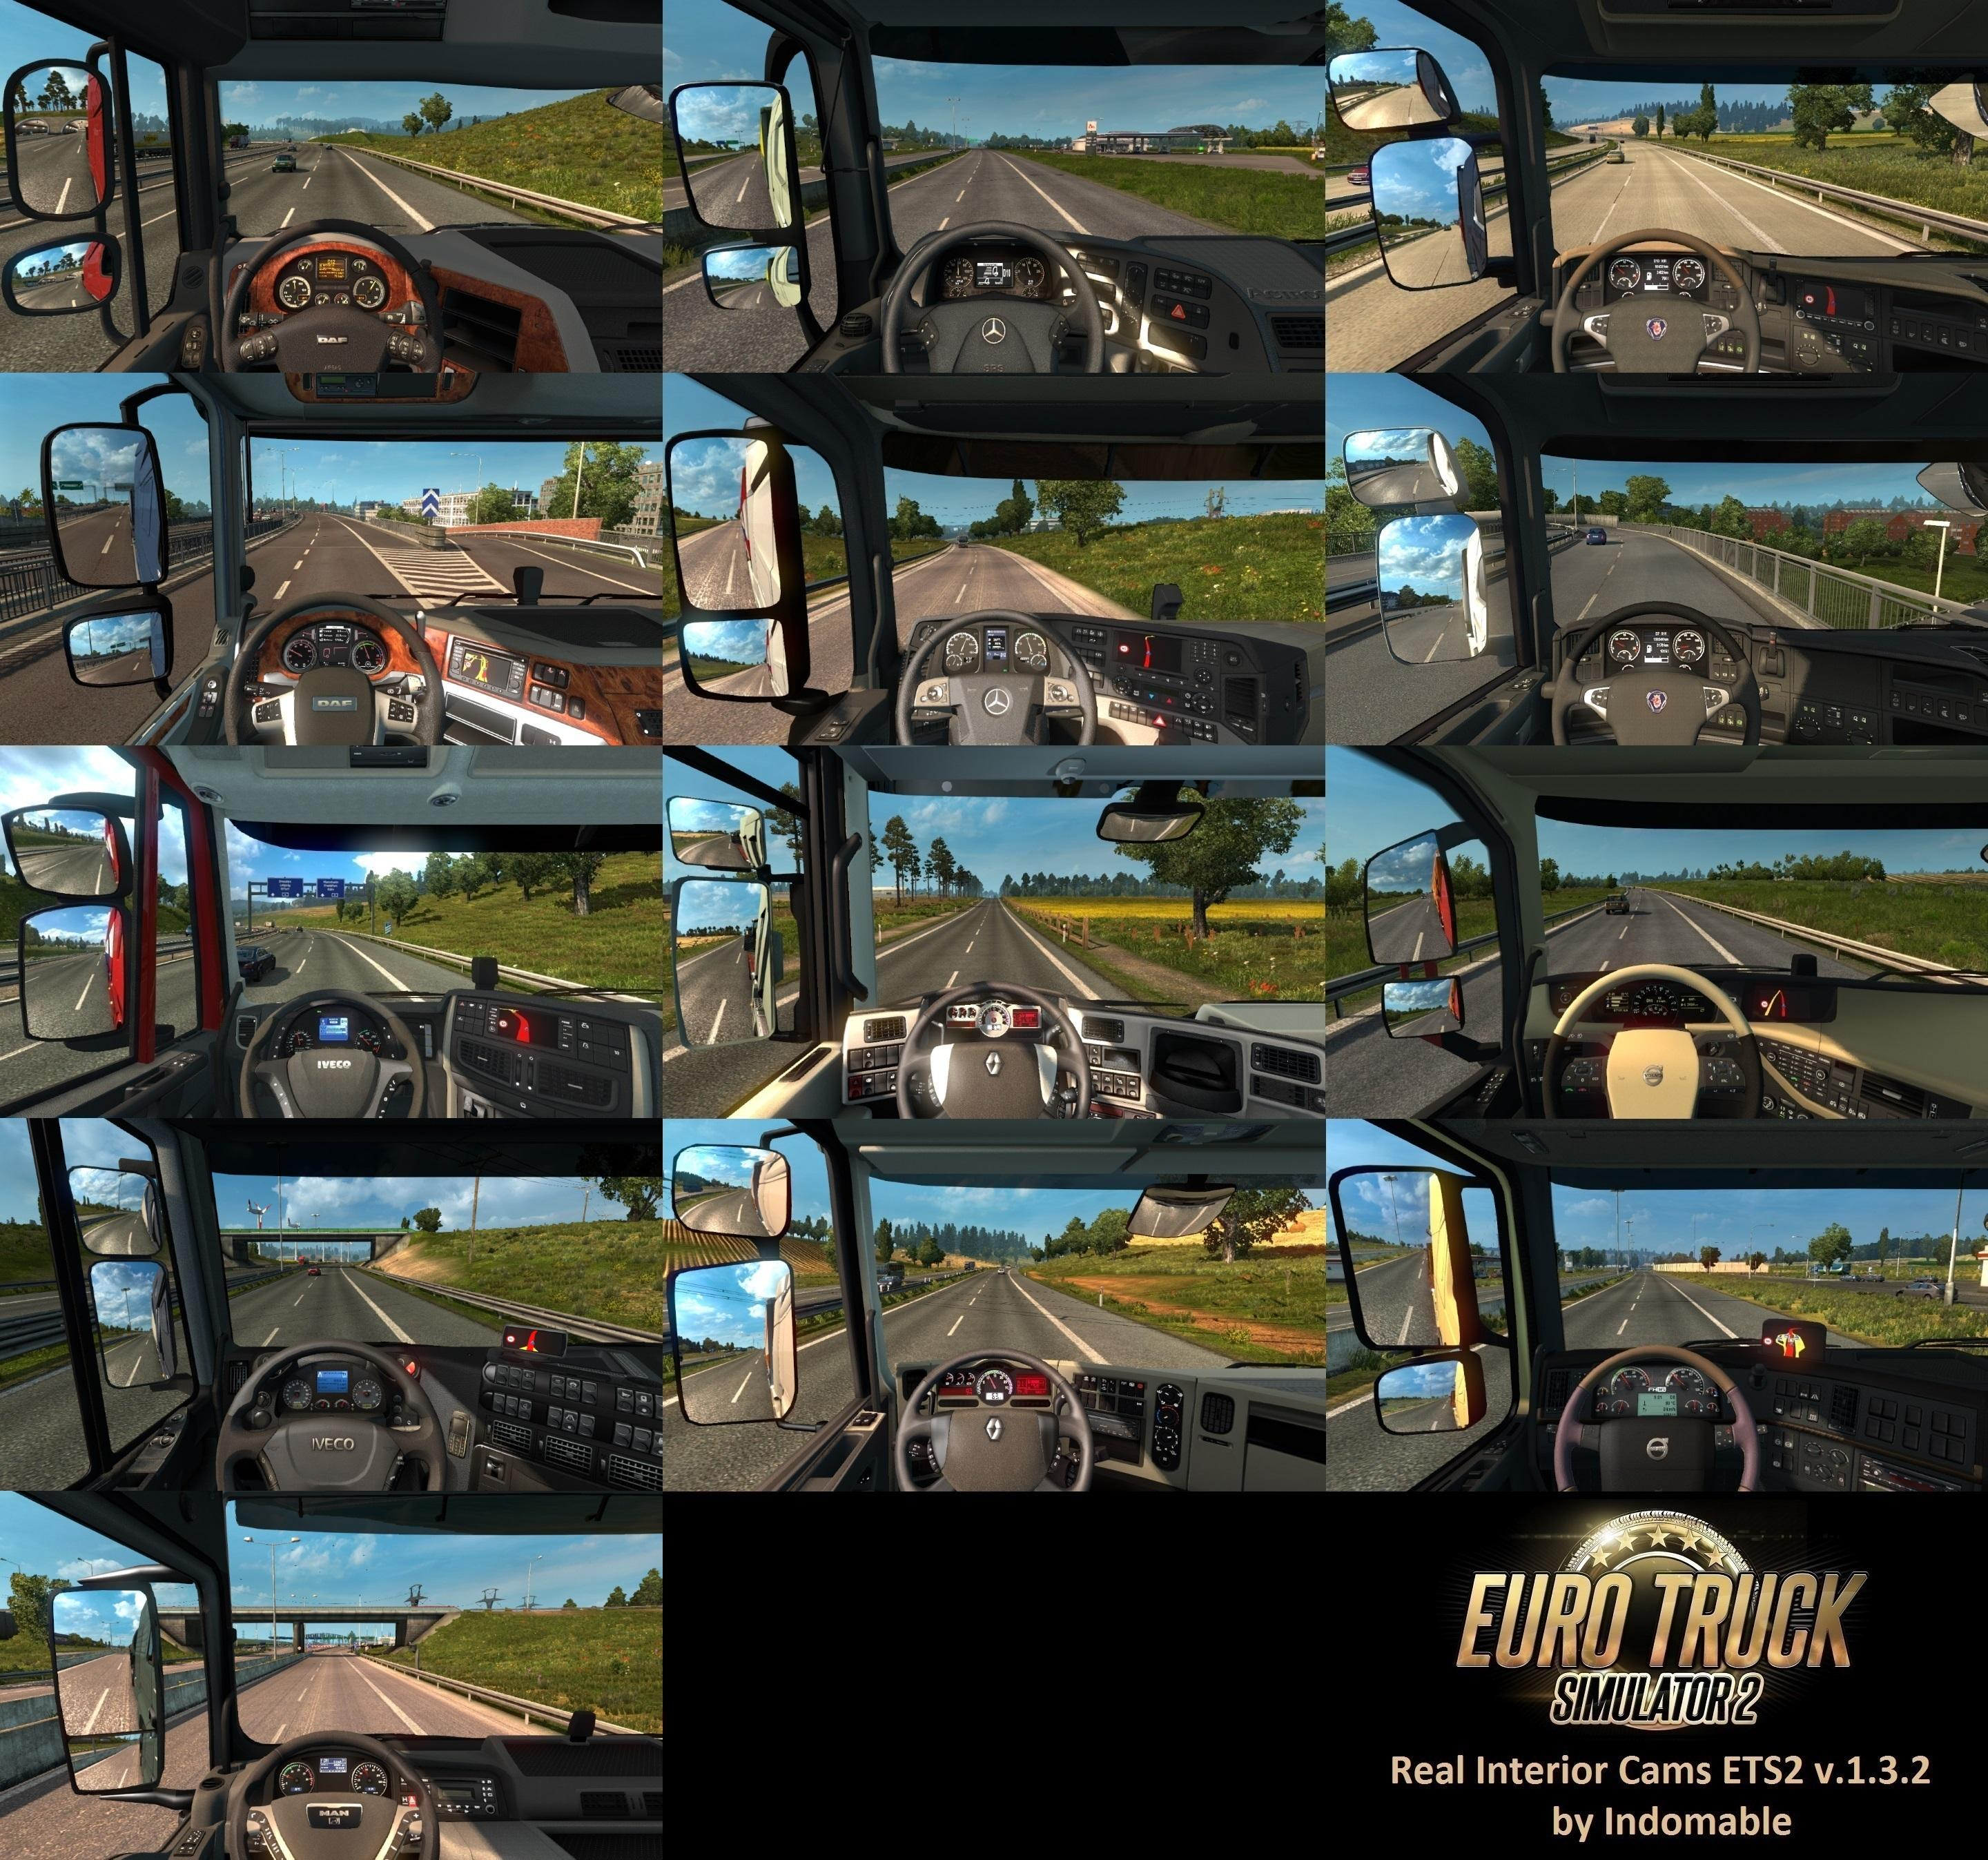 Seat Skins For Trucks >> REAL INTERIOR CAMS ETS2 V1.3.2 ETS 2 -Euro Truck Simulator 2 Mods